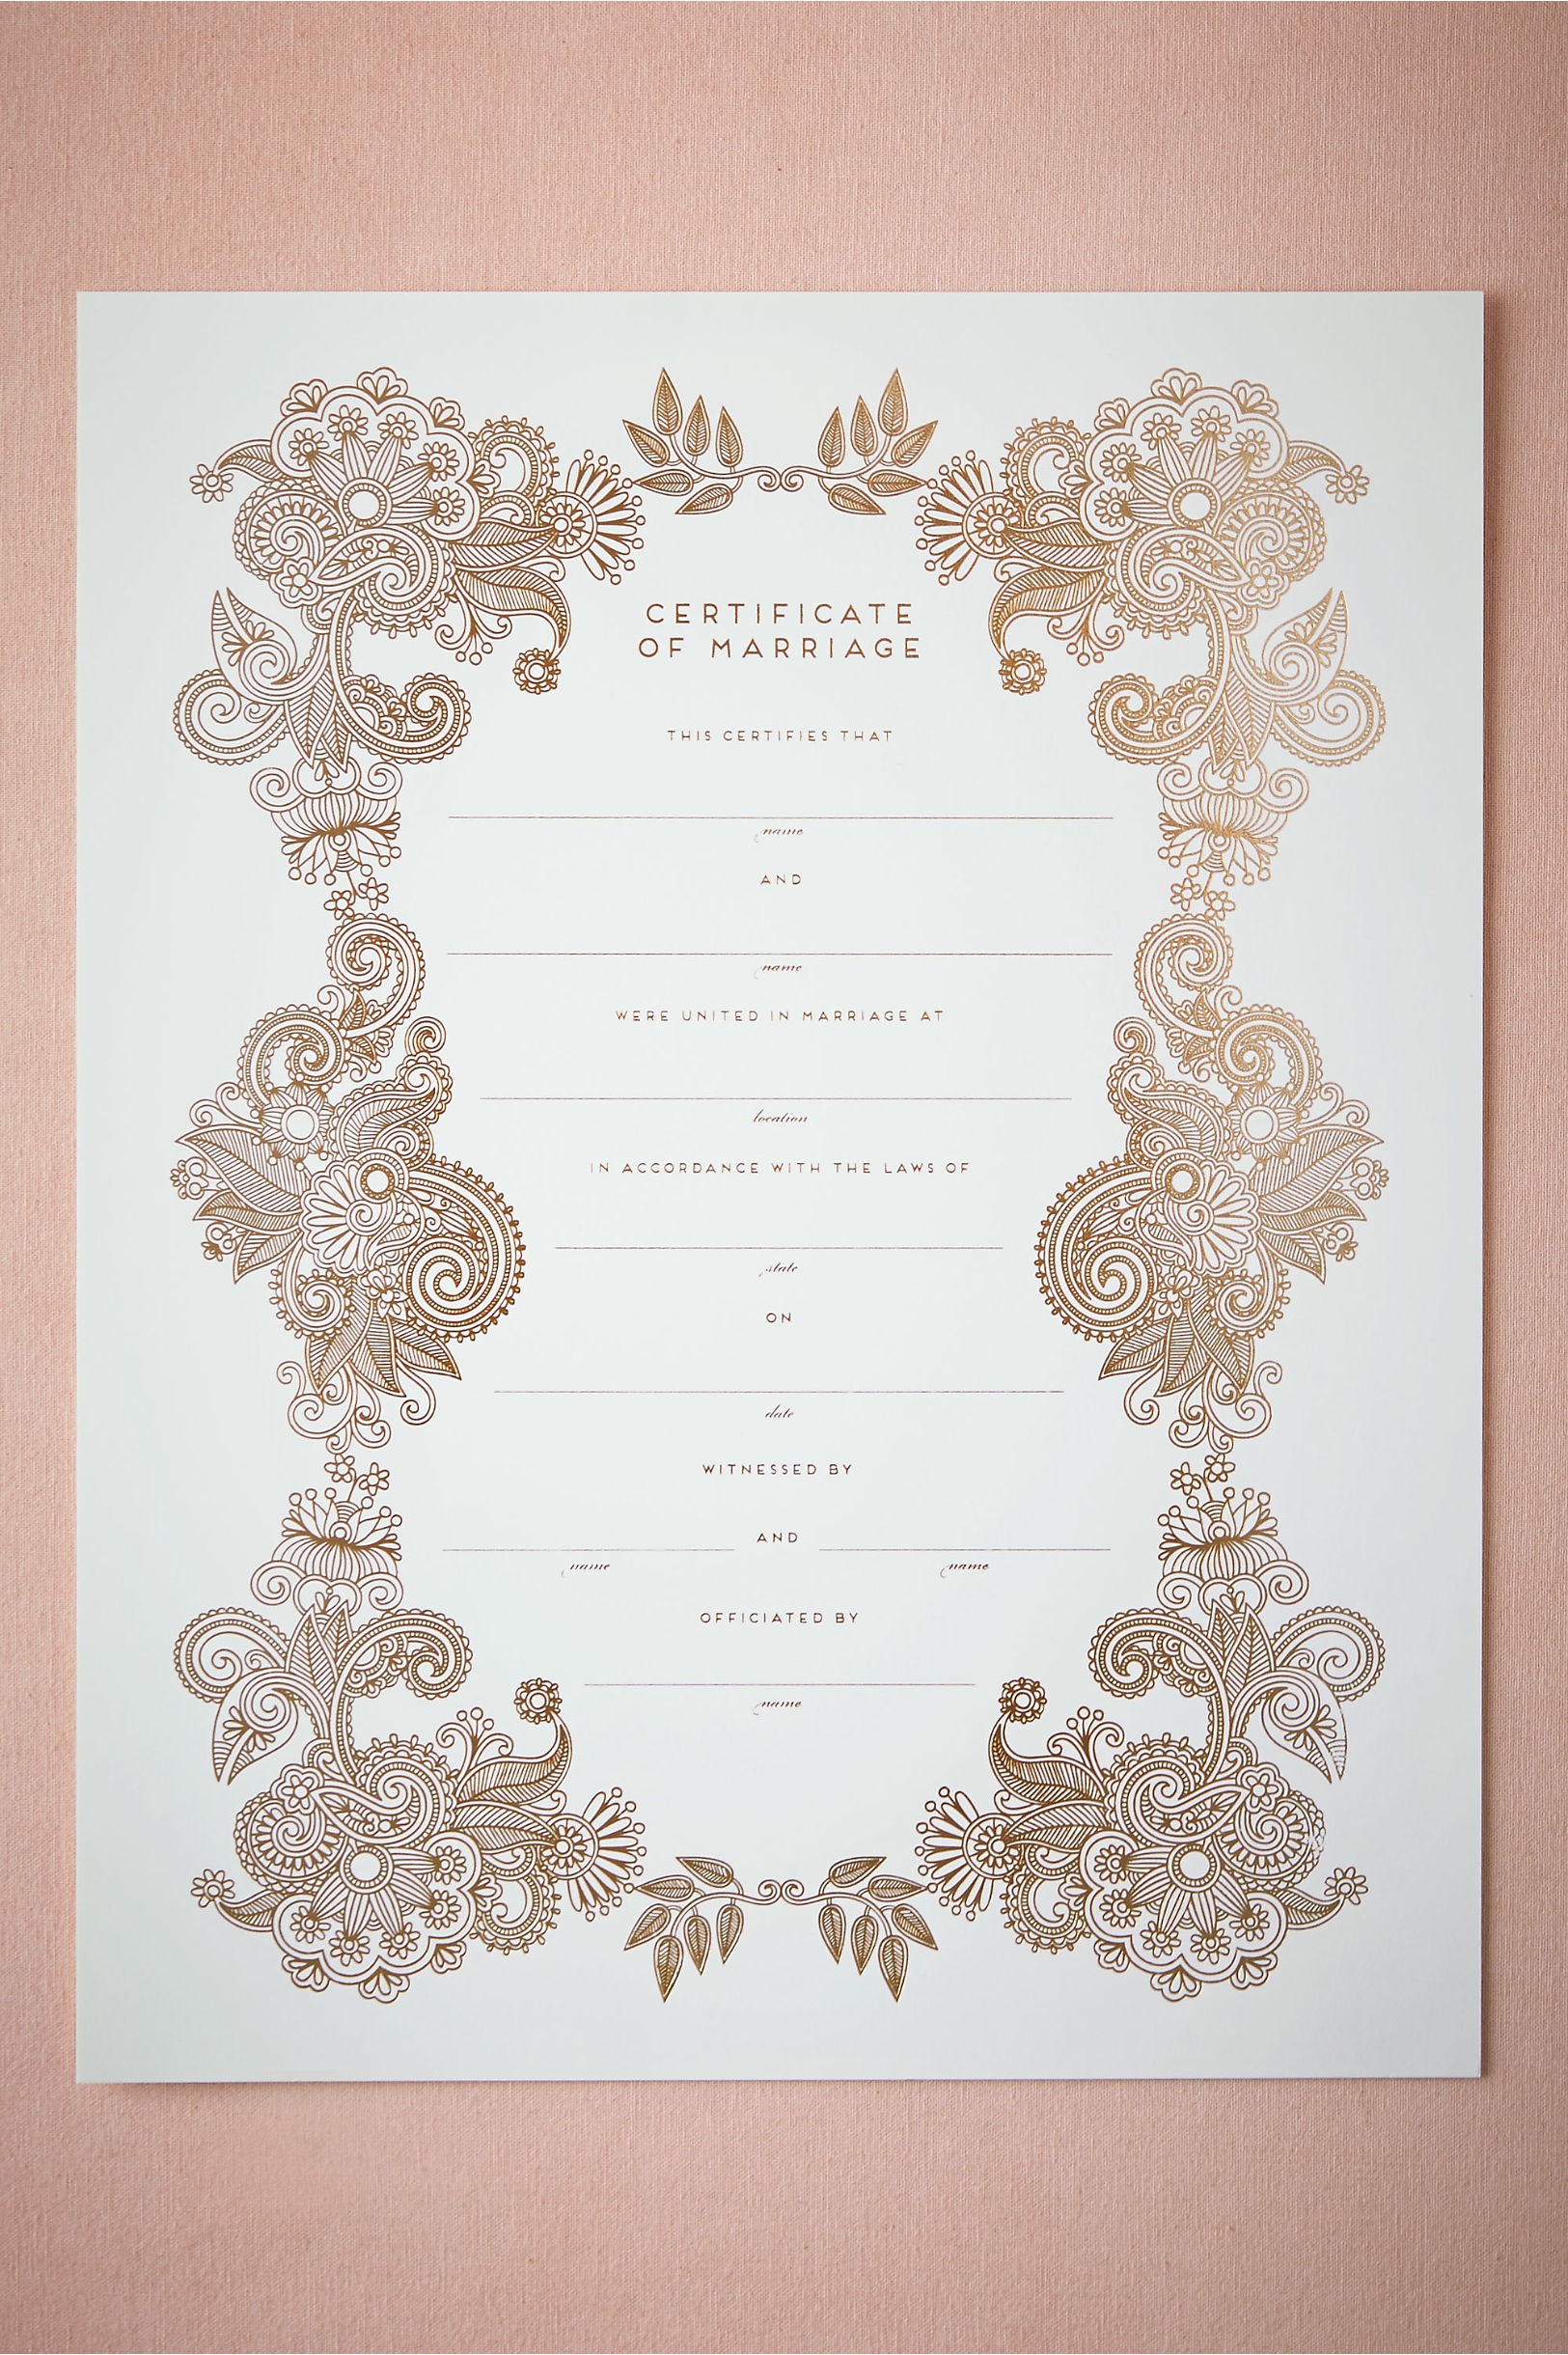 Keepsake wedding certificate wedding gallery keepsake marriage certificate in bhldn alramifo Image collections